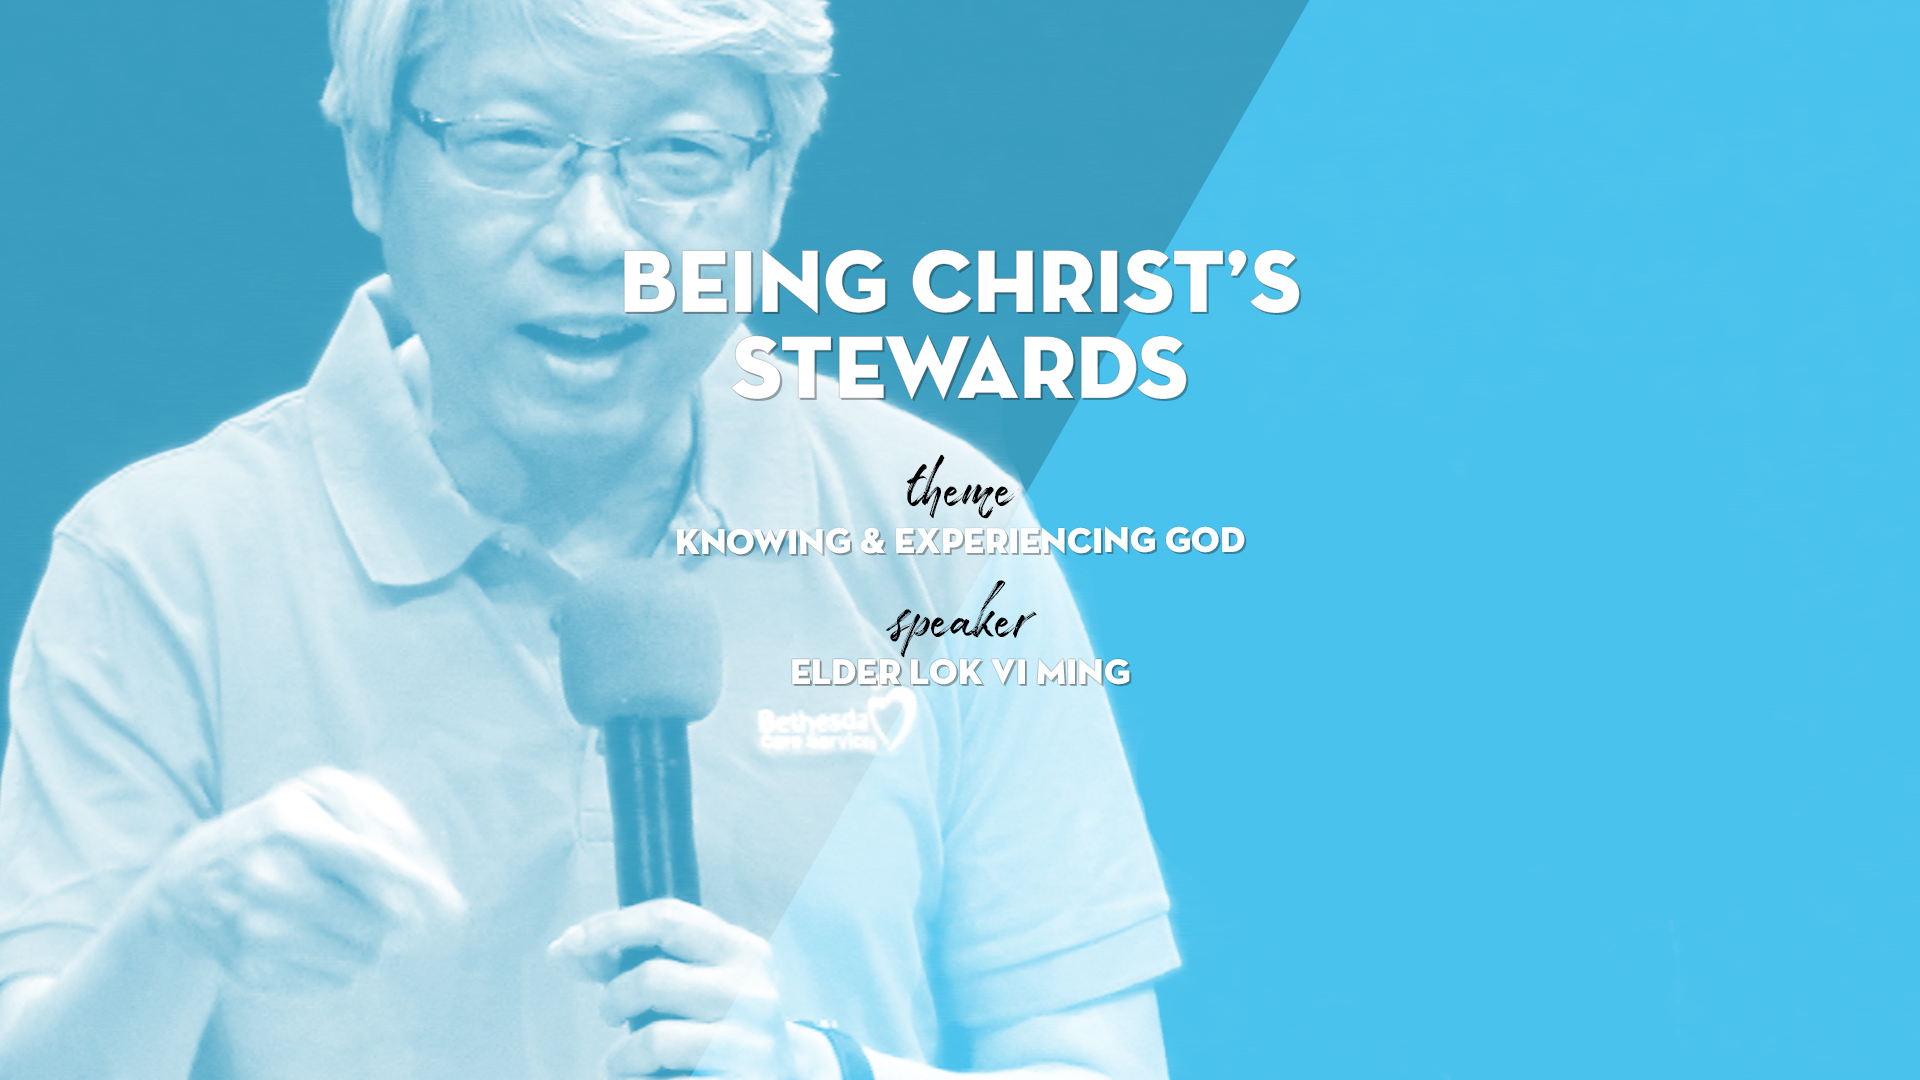 Being Christ's Steward